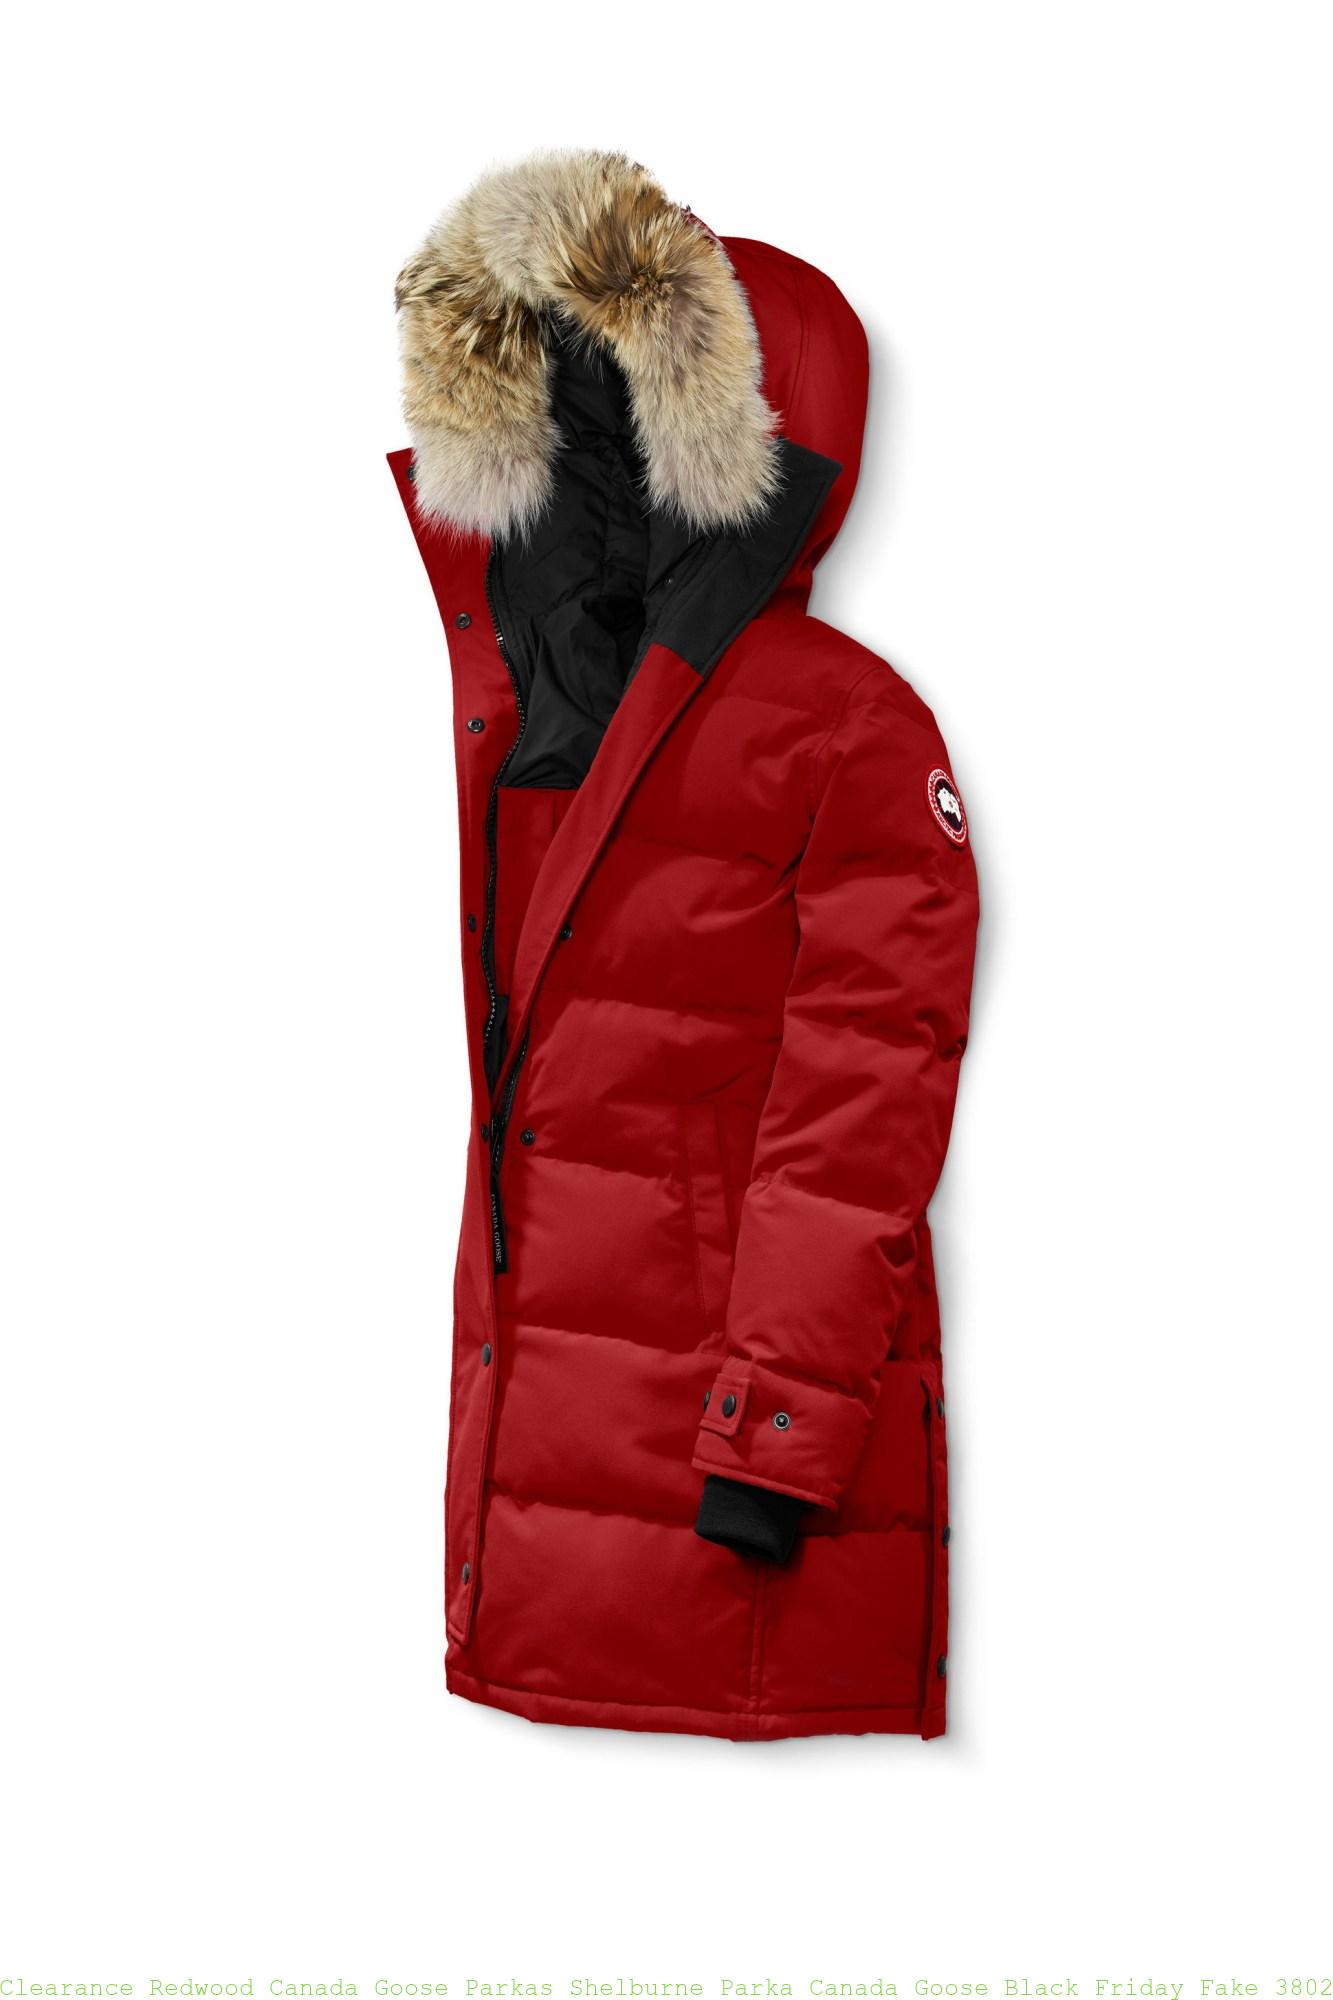 ae5eb66268c Clearance Redwood Canada Goose Parkas Shelburne Parka Canada Goose Black  Friday Fake 3802L